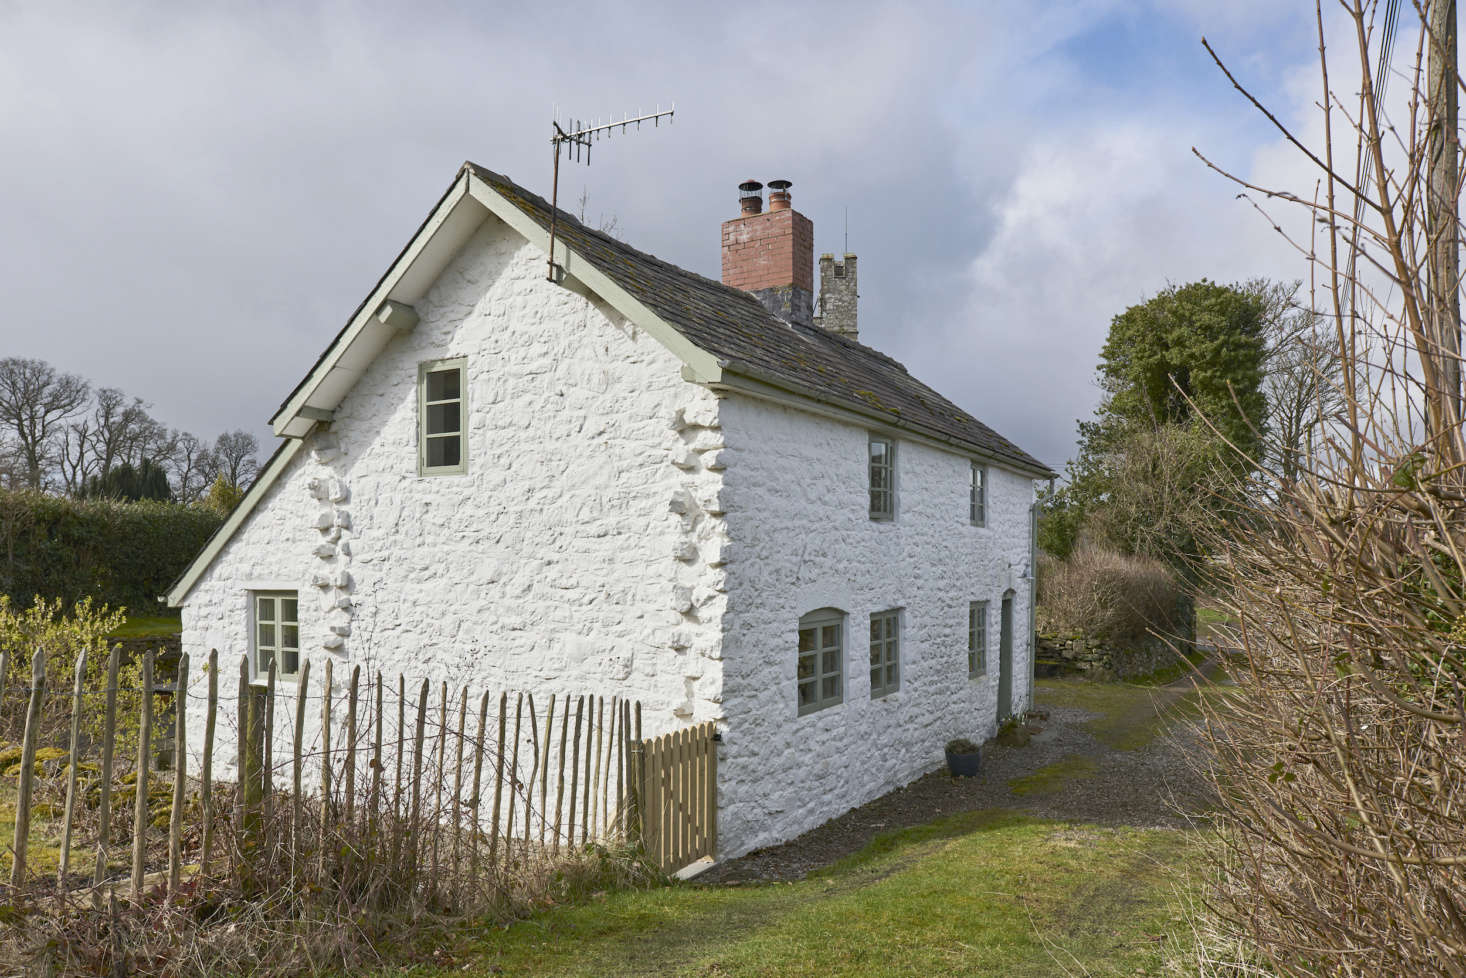 The cottage, which is said to have been built in 7